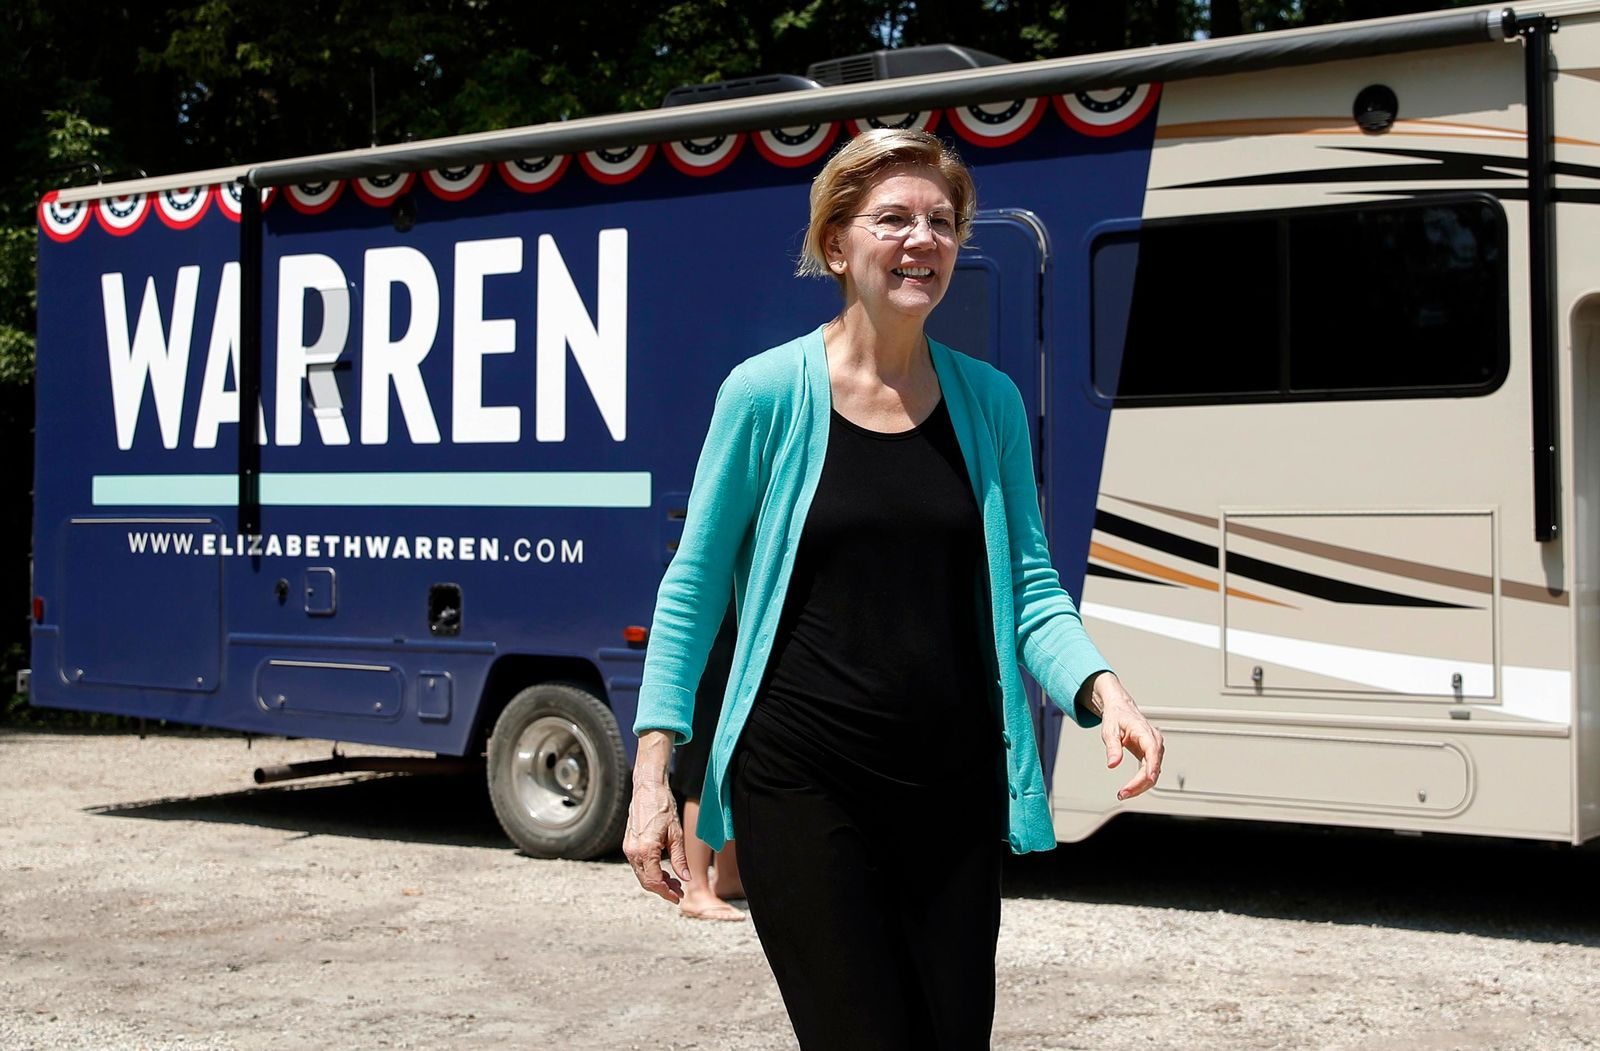 Democratic presidential candidate Sen. Elizabeth Warren, D-Mass., exits a motor home as she visits a park along the Des Moines River, Friday, Aug. 9, 2019, in Humboldt, Iowa. (AP Photo/John Locher)